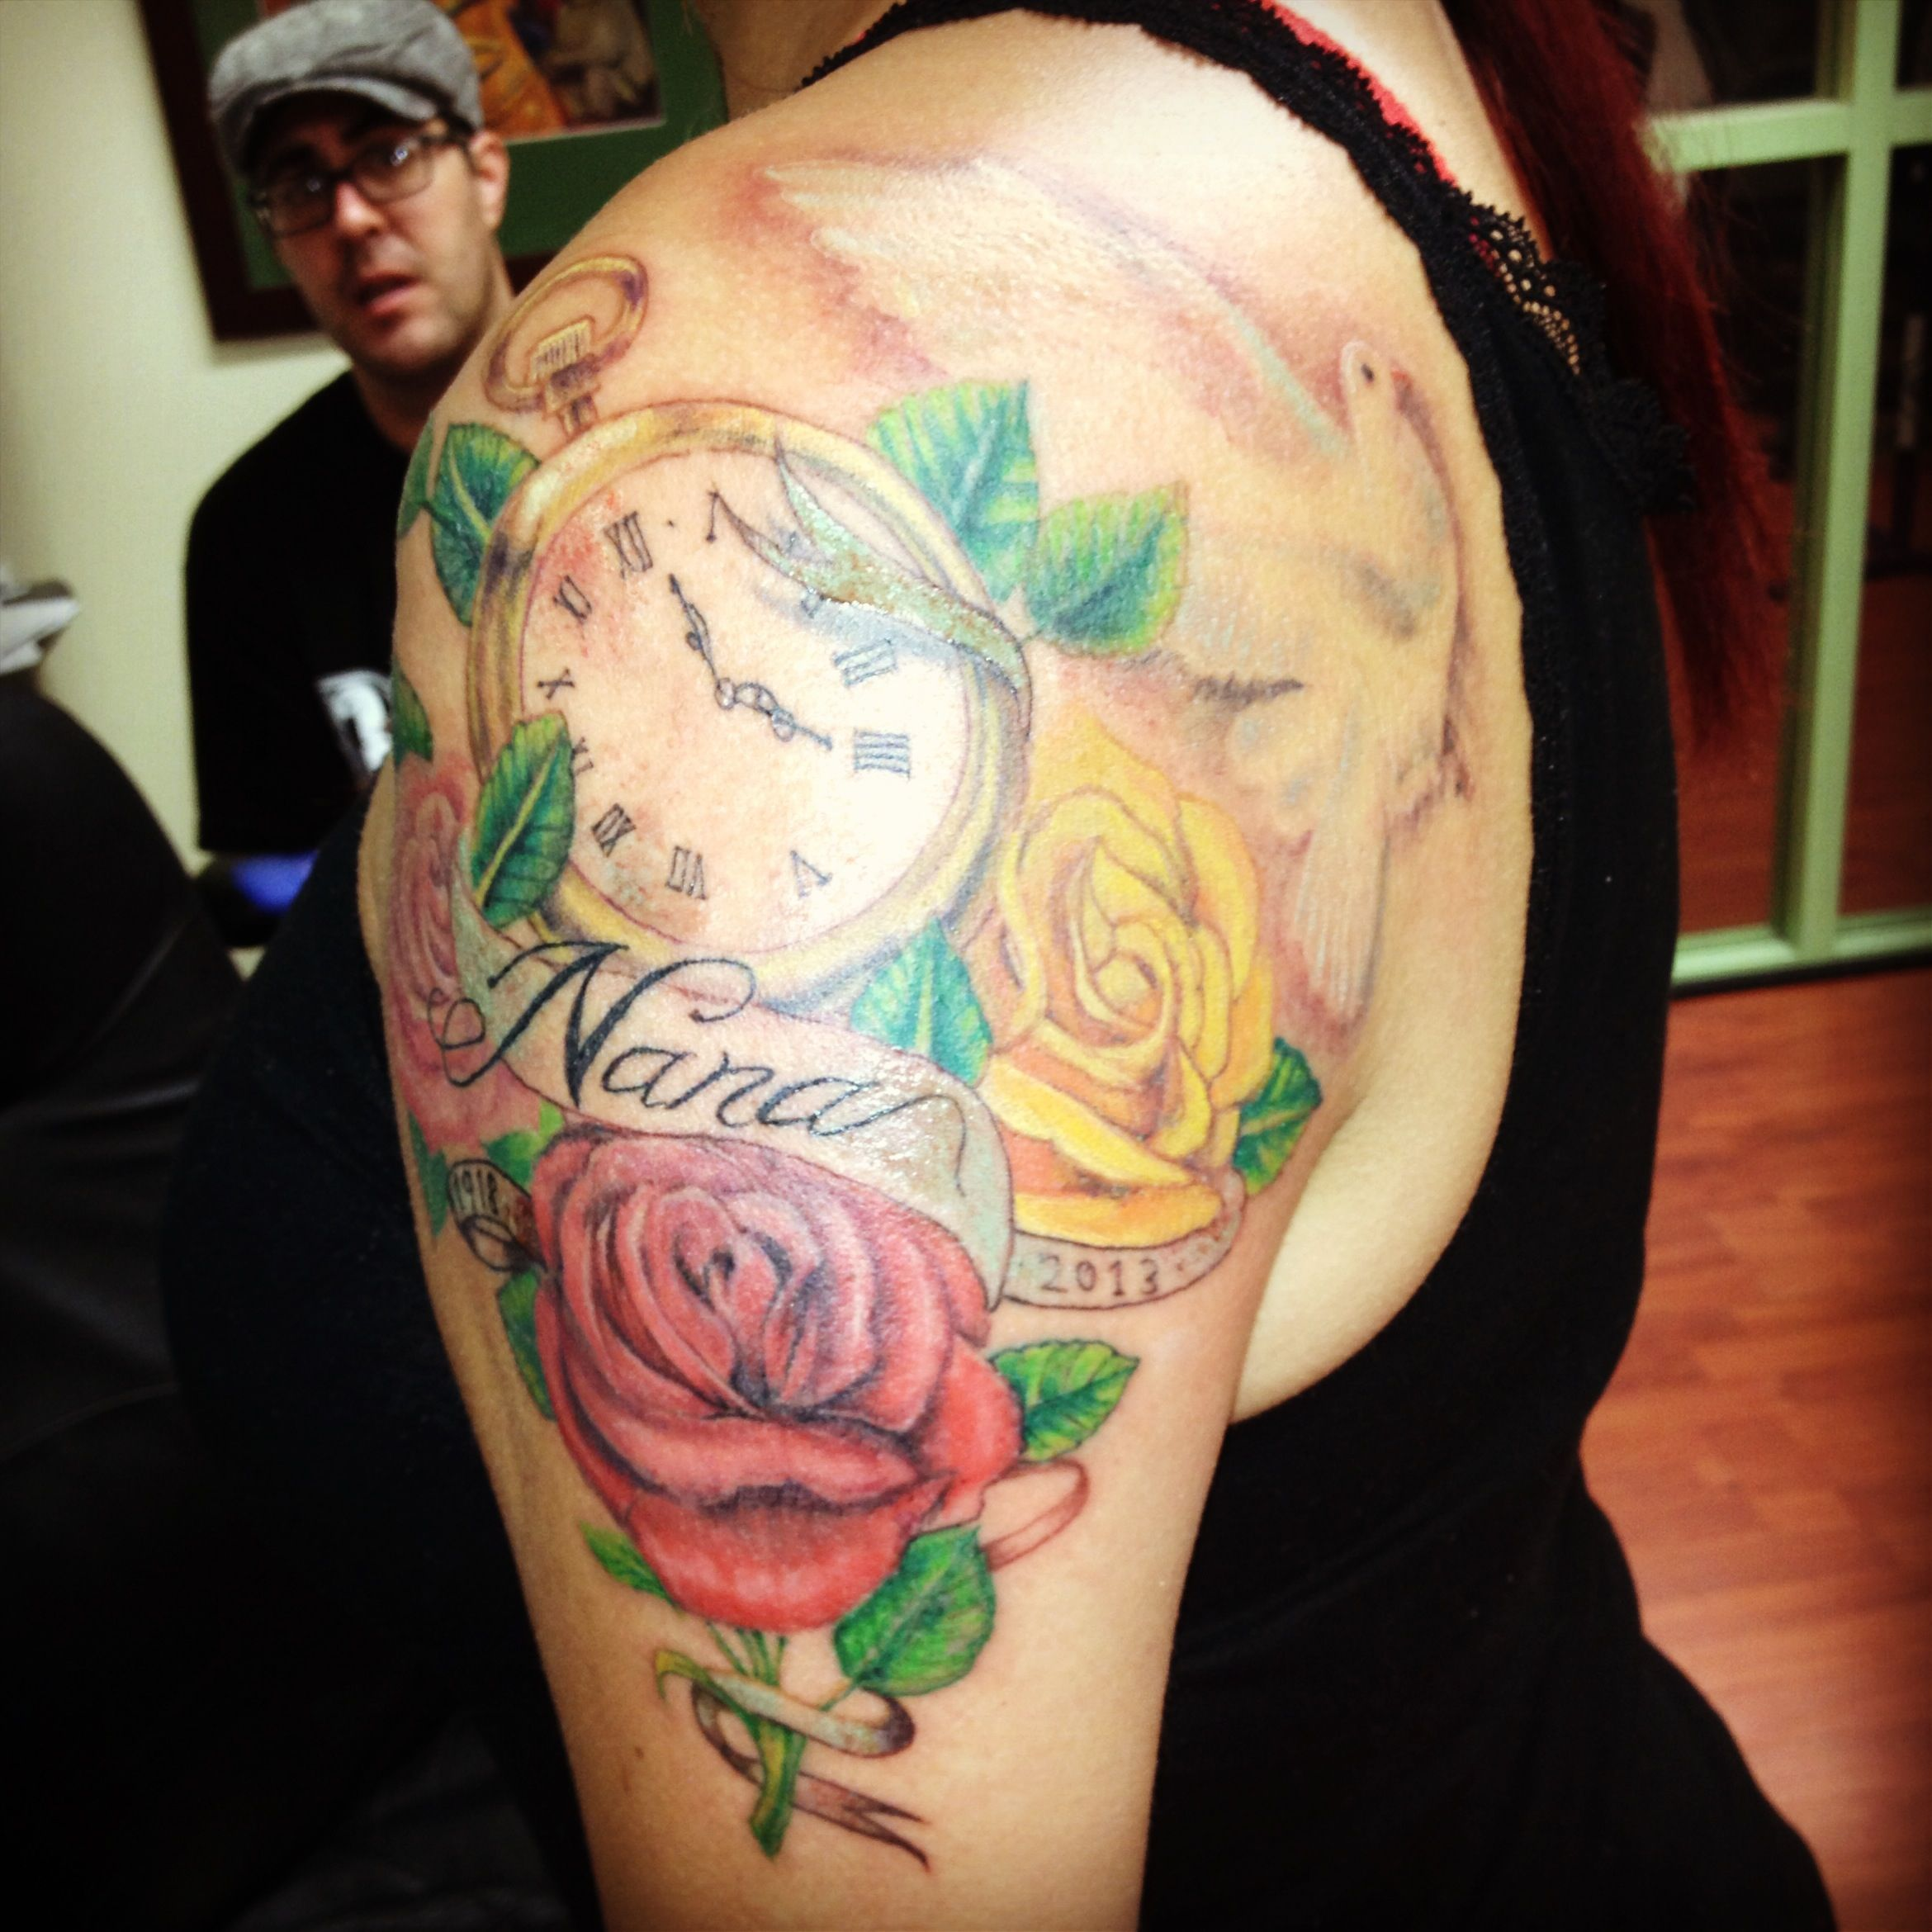 Memorial Tattoo Of 3 Roses Yellow Red And Pink With A Pocket Watch And White Dove For My Nana 1918 2013 Rose Tattoos Tattoos Memorial Tattoo